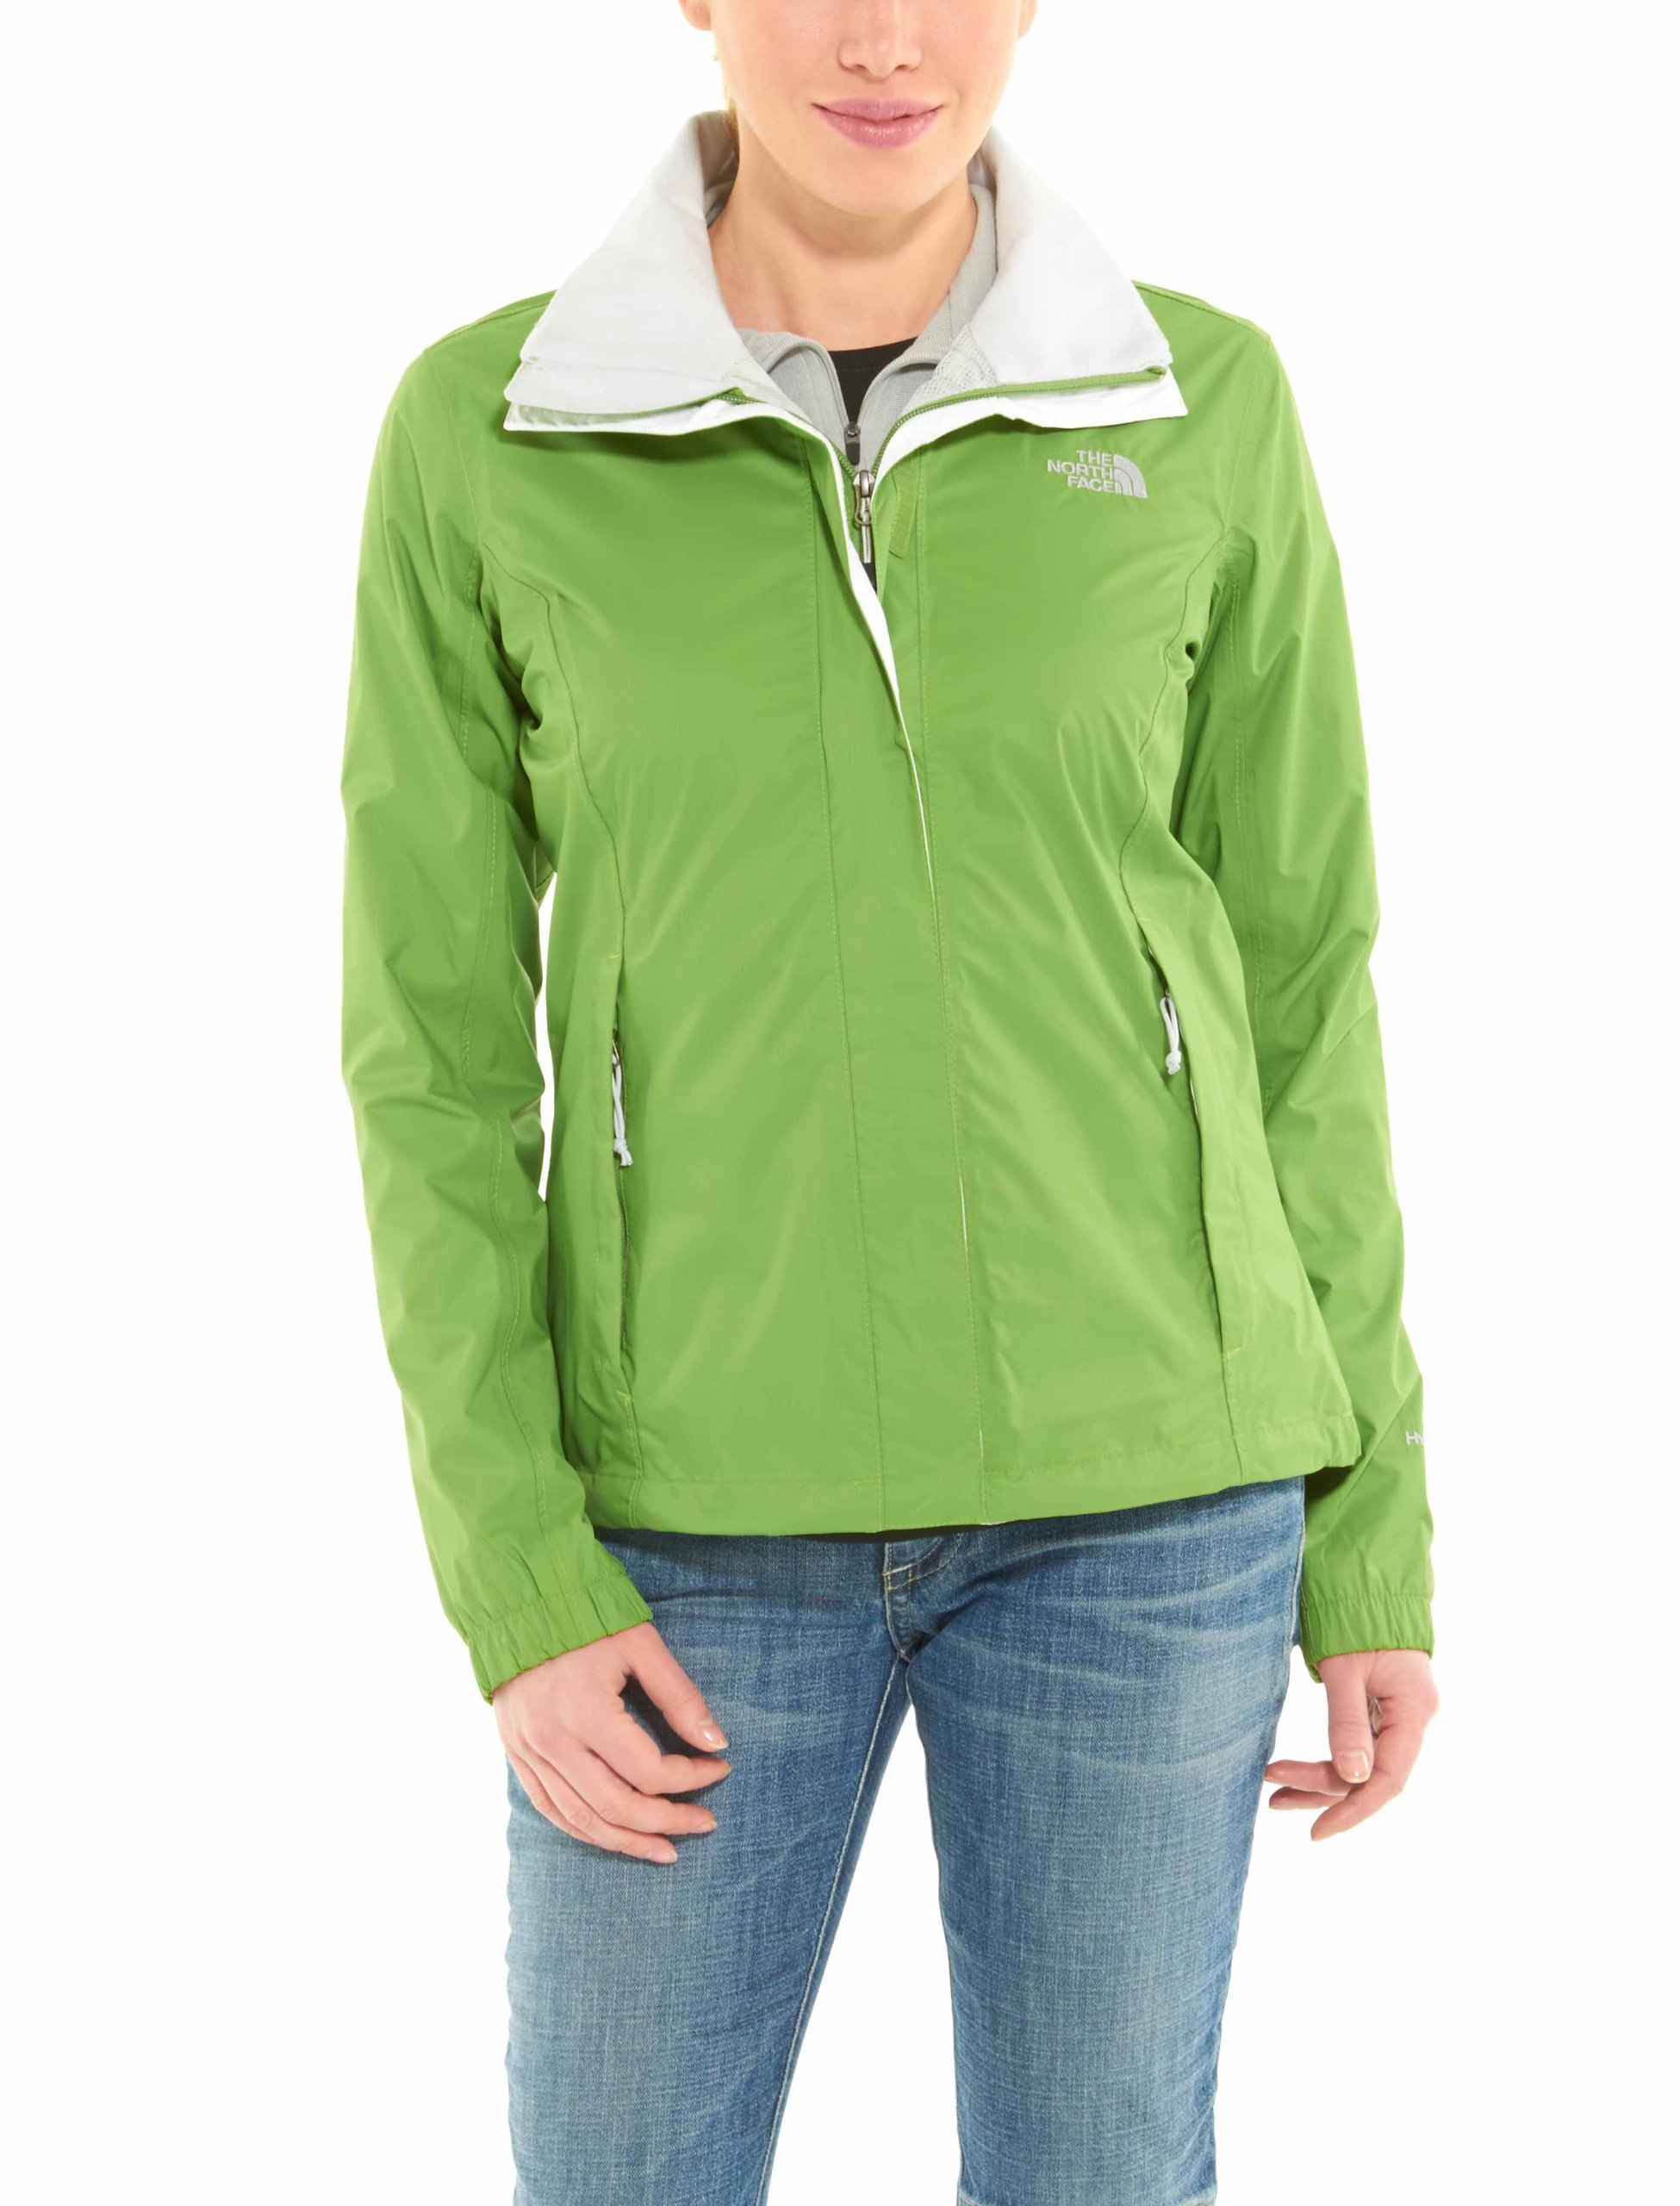 The North Face Womens Resolve Jacket Style: AQBJ-37A Size: L